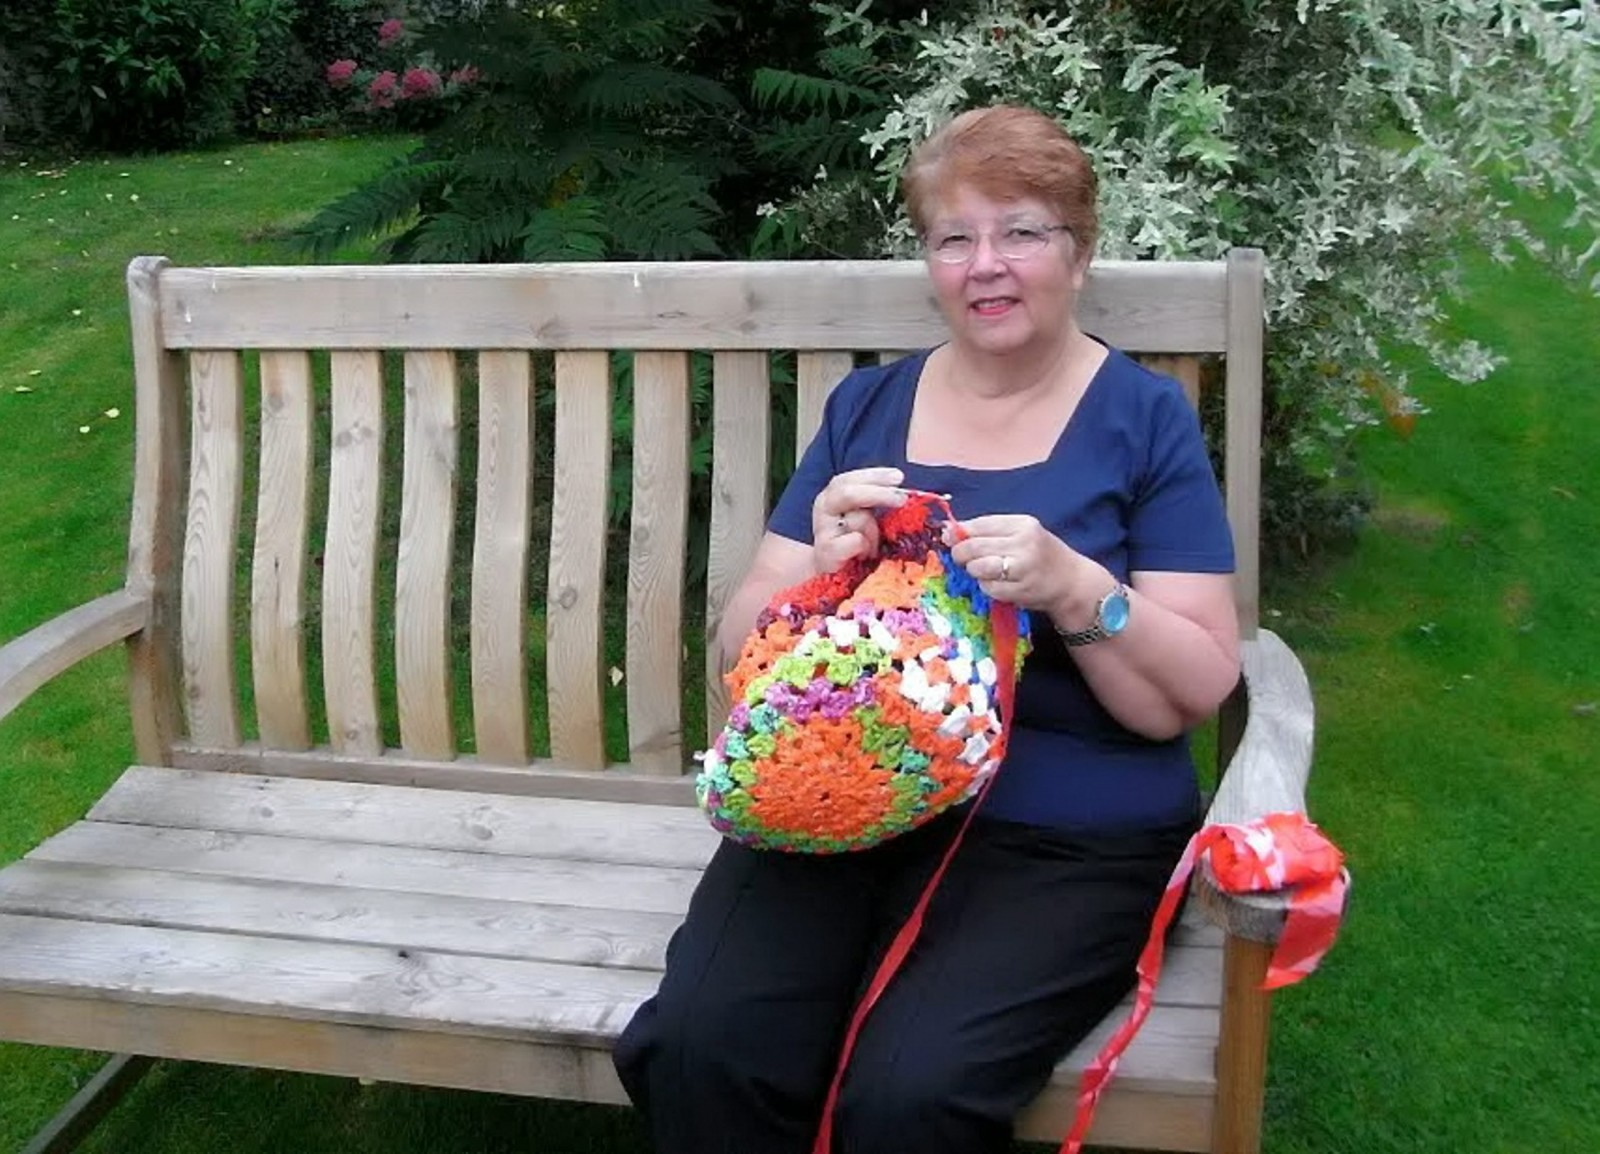 This granny has found a novel way of avoiding the 5p plastic bag charge!